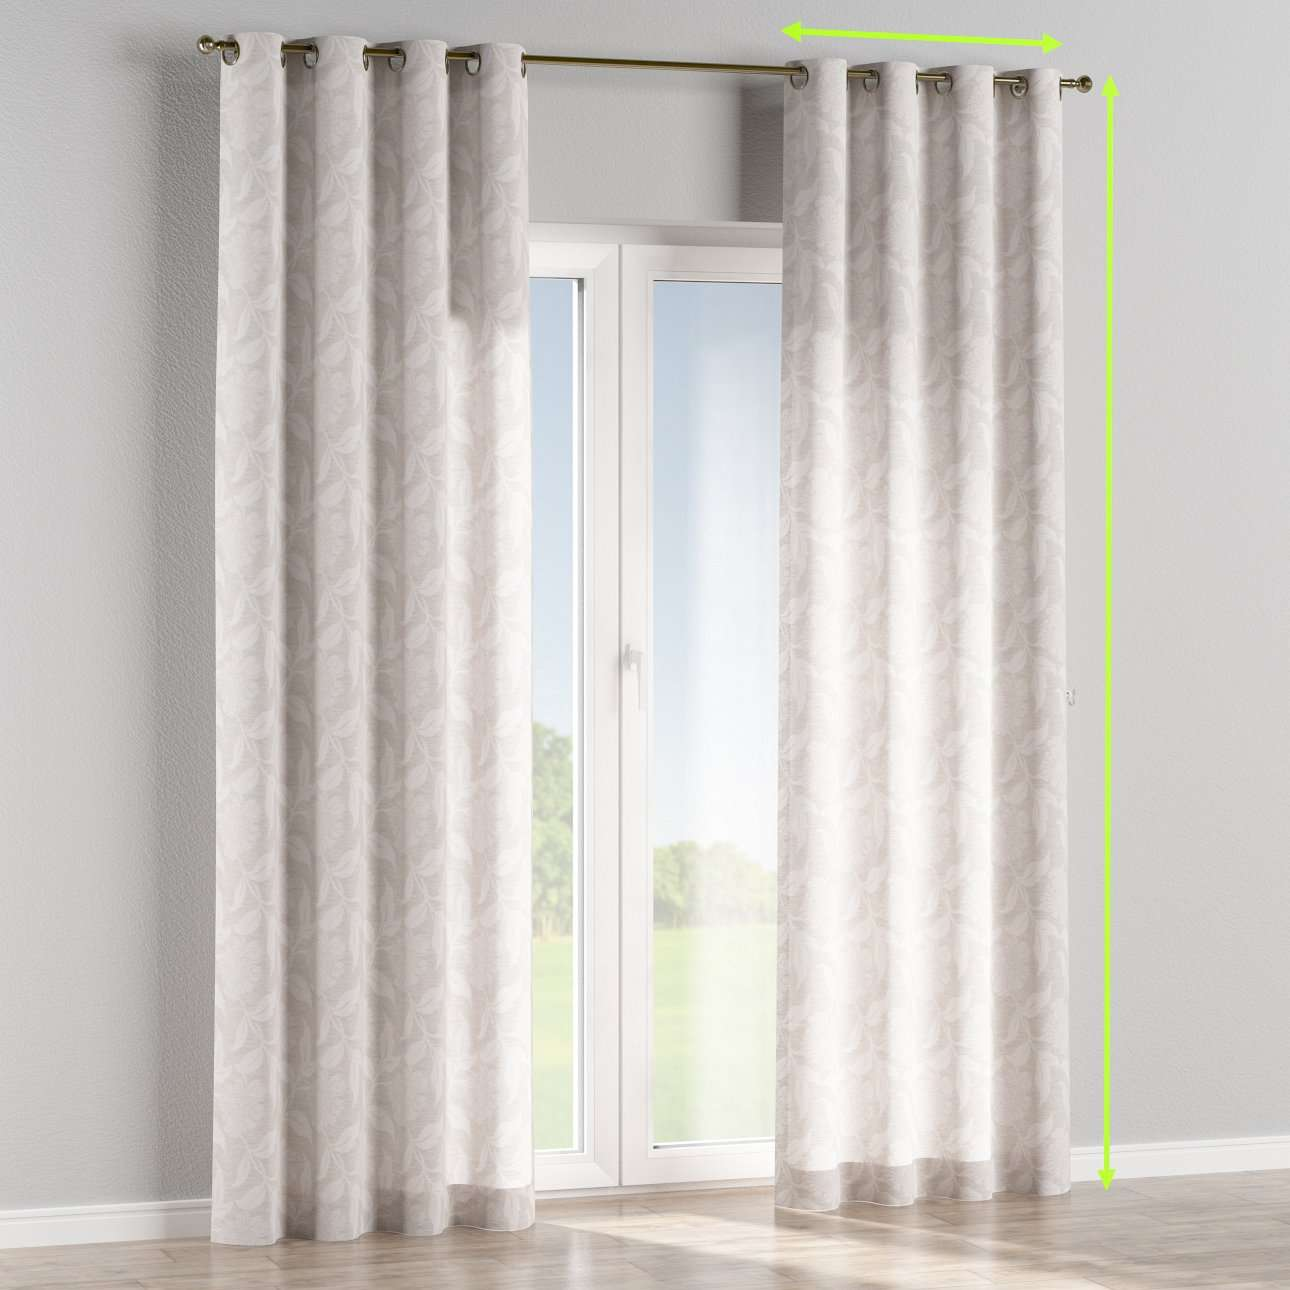 Eyelet lined curtains in collection Venice, fabric: 140-51